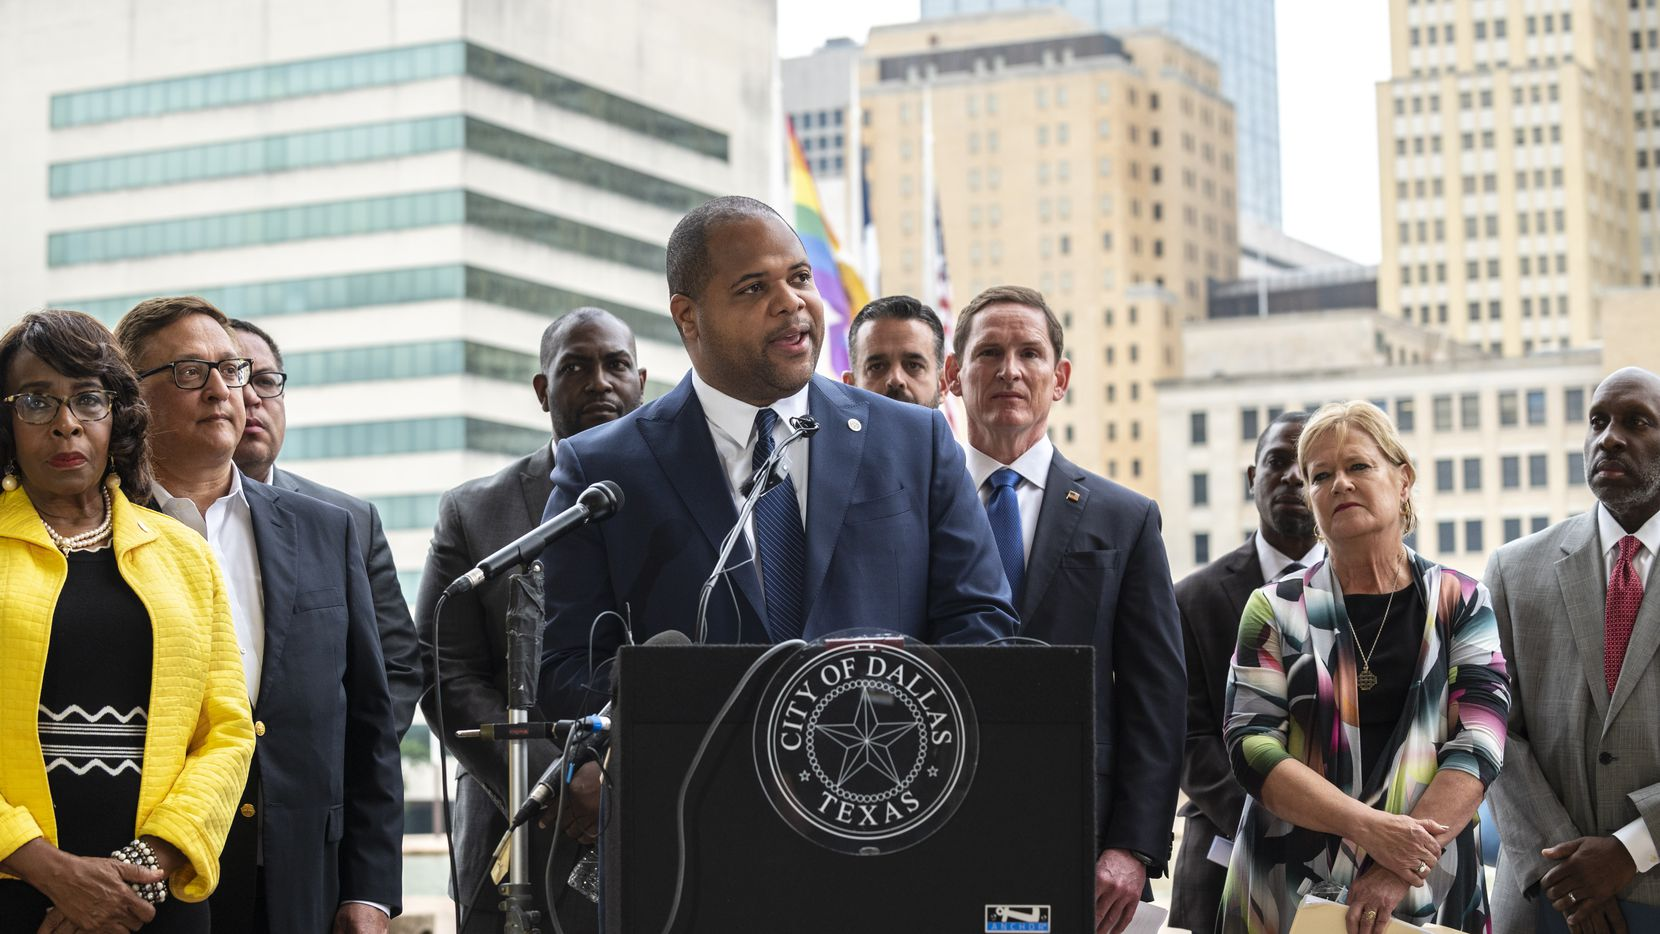 Dallas Mayor Eric Johnson conducts a press conference announcing a collaboration with Metro Dallas Homeless Alliance, to house over 2,600 homeless individuals. He is pictured outside of Dallas City Hall, on Wednesday morning, June 23, 2021. Metro Dallas Homeless Alliance, the lead agency in North Texas' homeless efforts, joins the City of Dallas, Dallas County, Mesquite, the Homeless Collaborative and the Dallas Housing Authority, behind a $70 million commitment to house over 2,600 individuals.